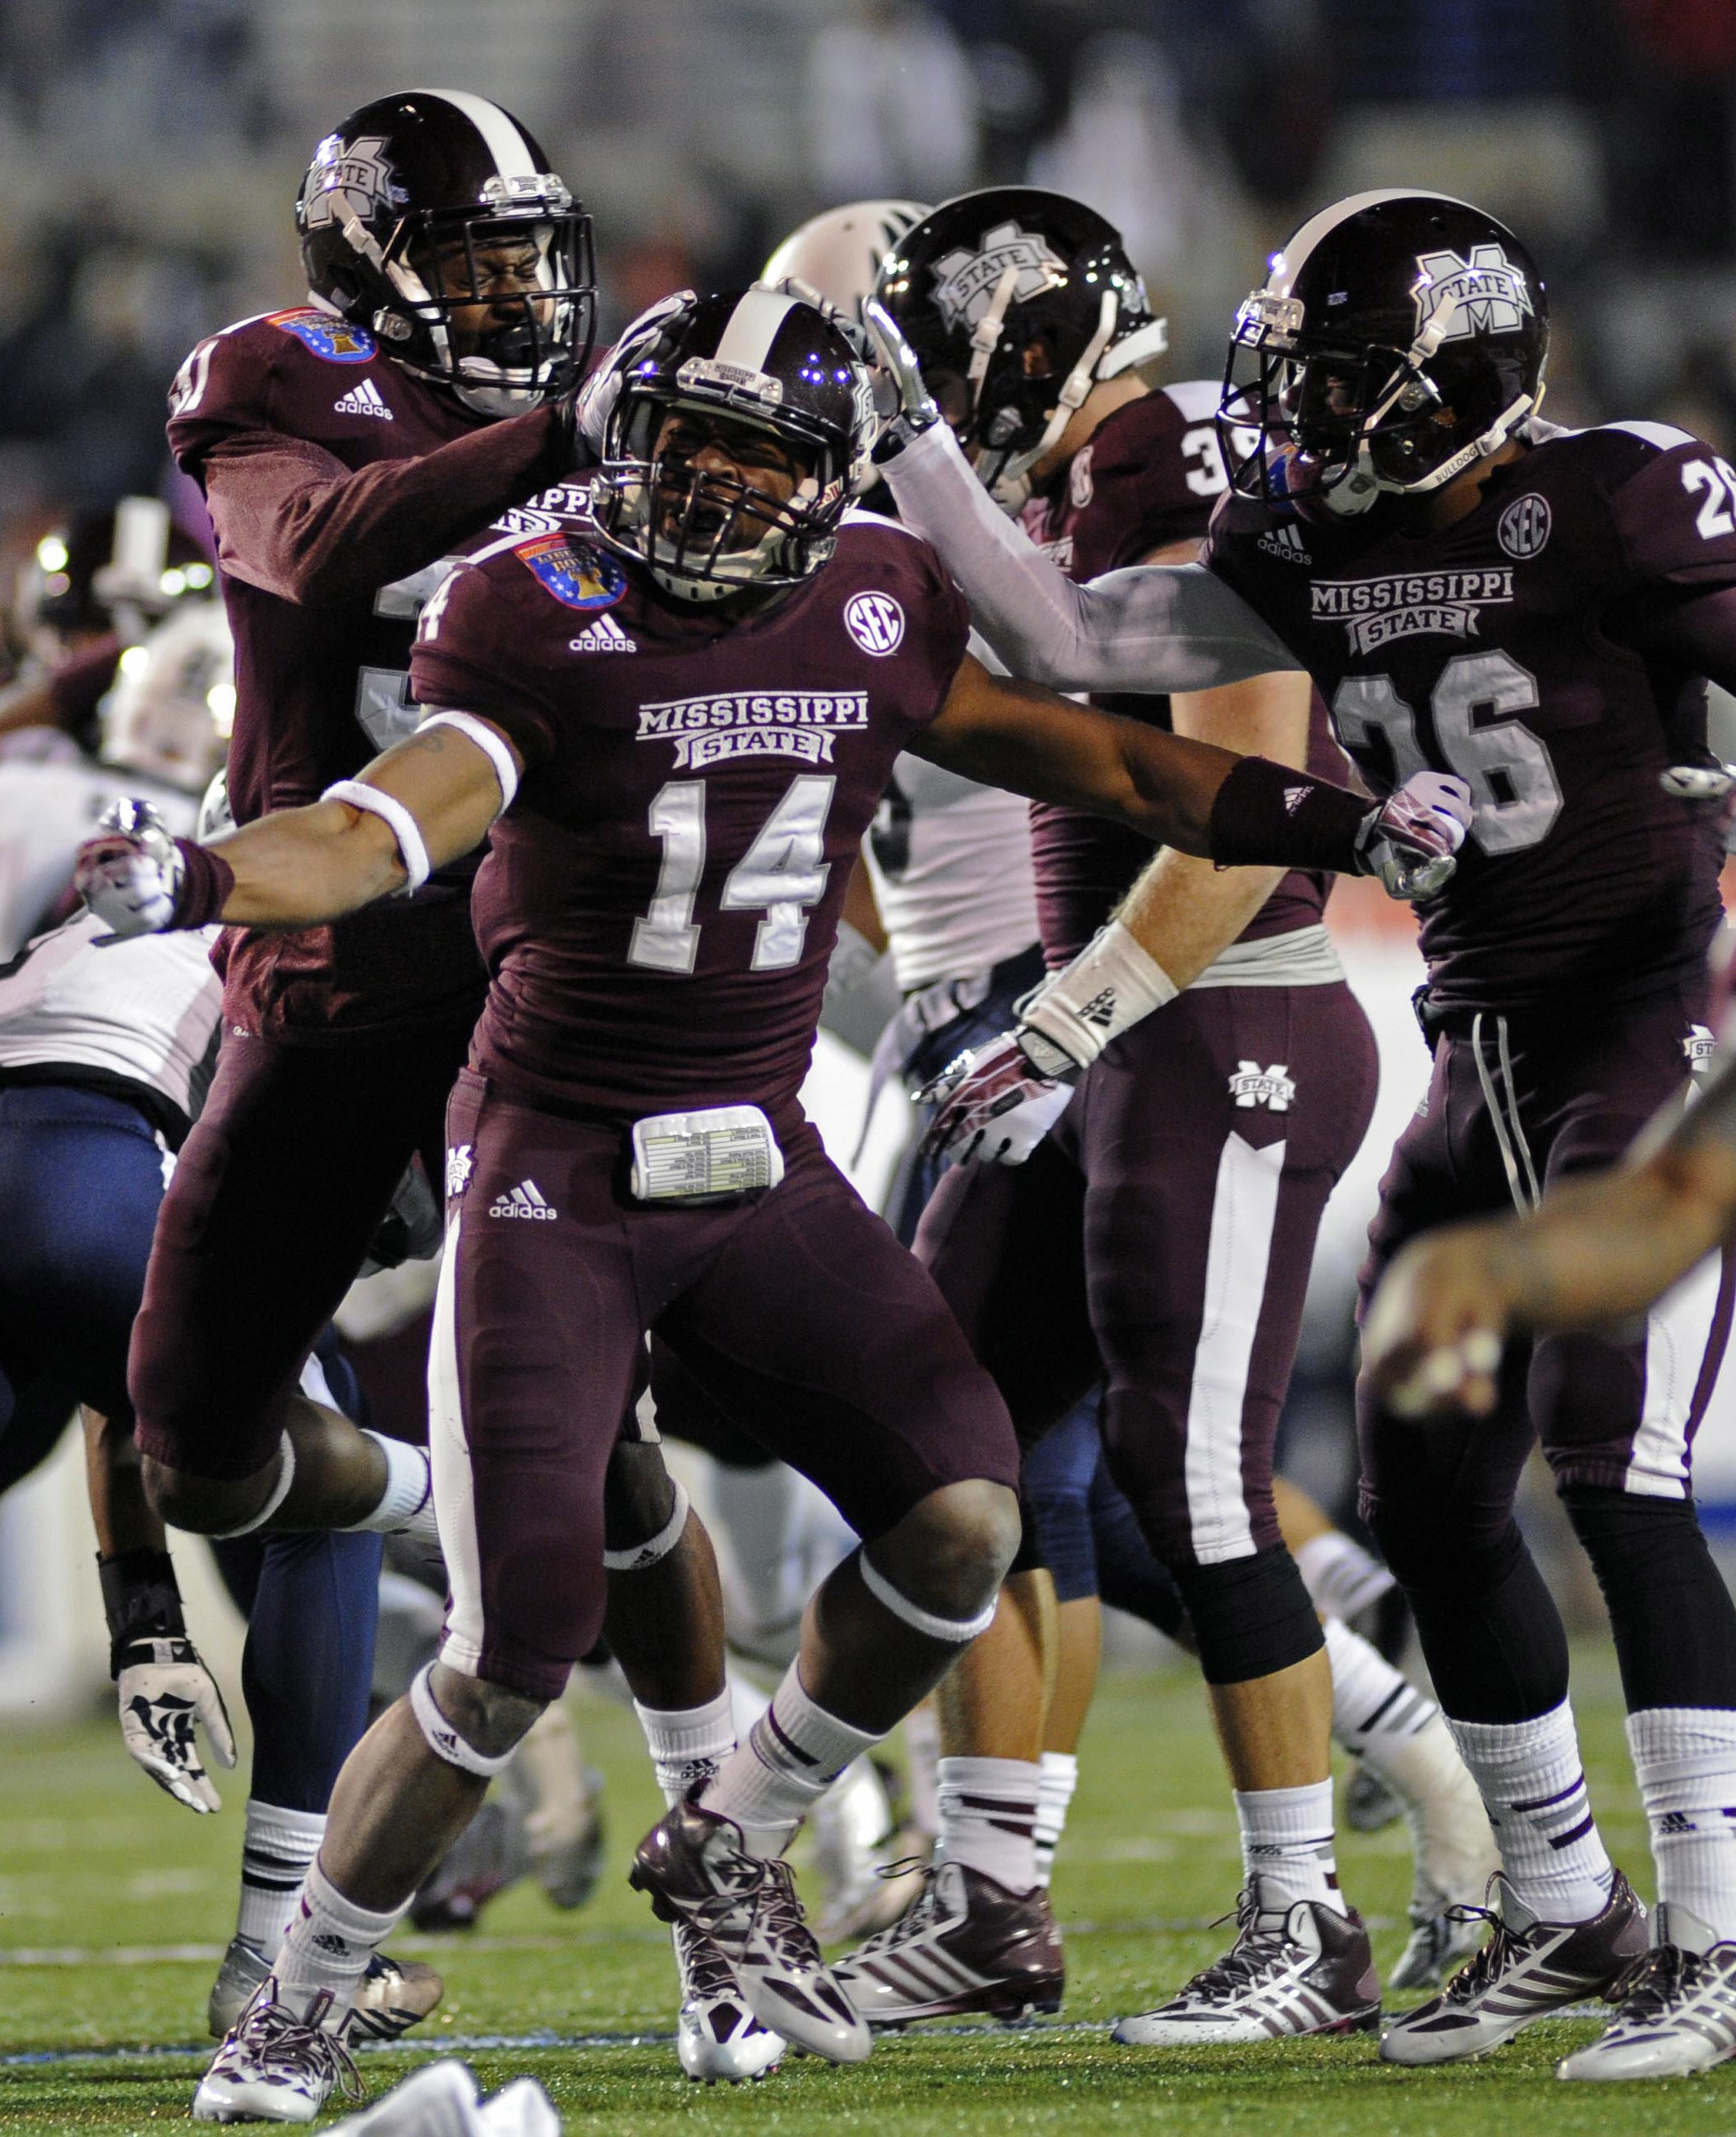 What changes could be in store for MSU's uniforms this year? We may find out Thursday